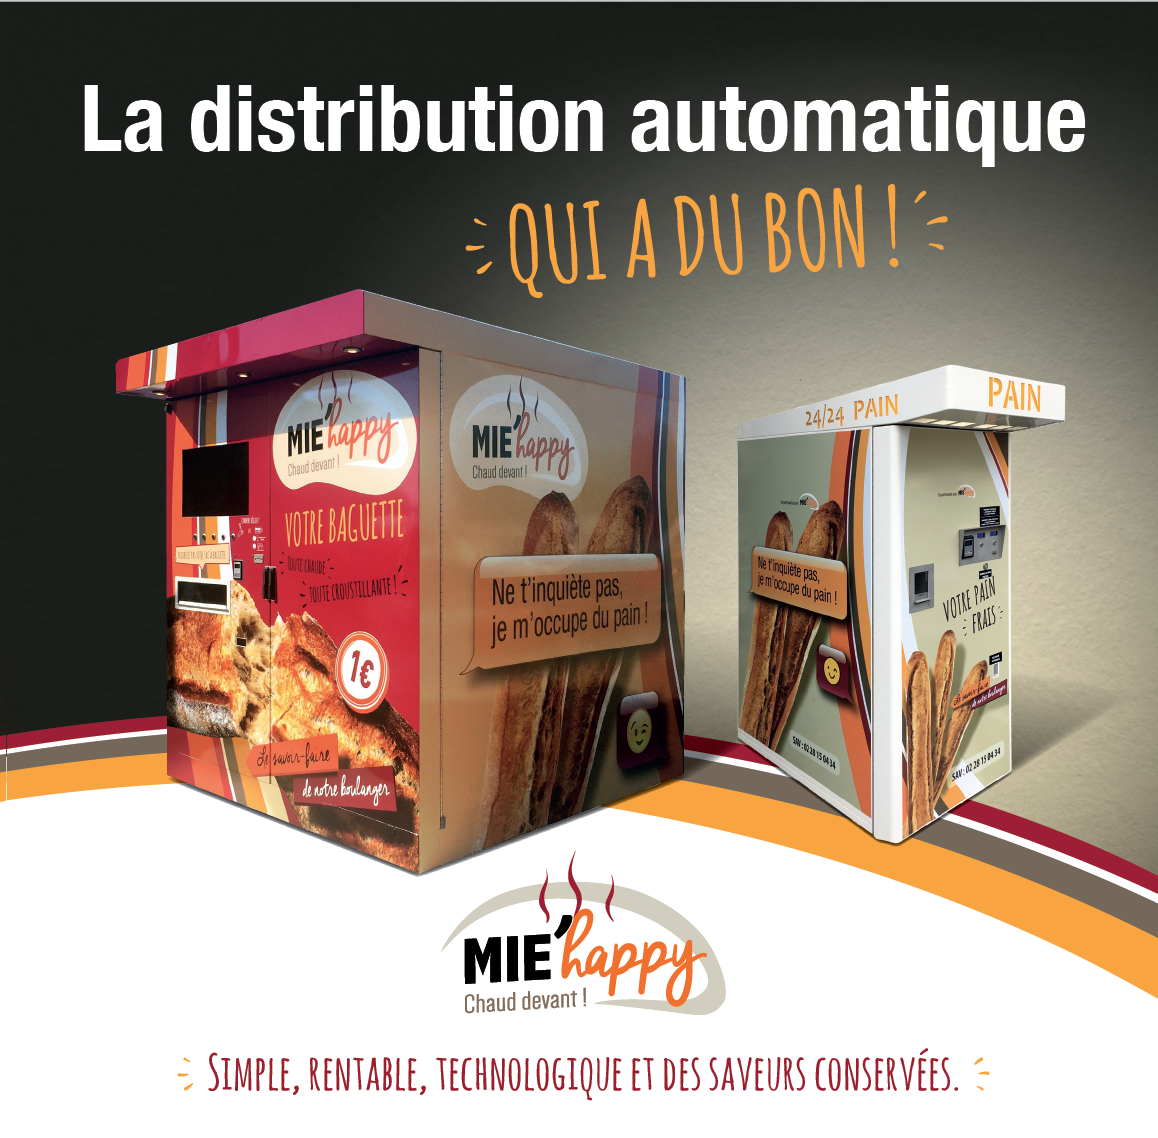 Distributeur-automatique-de-pain-mie-happy-article-lancement